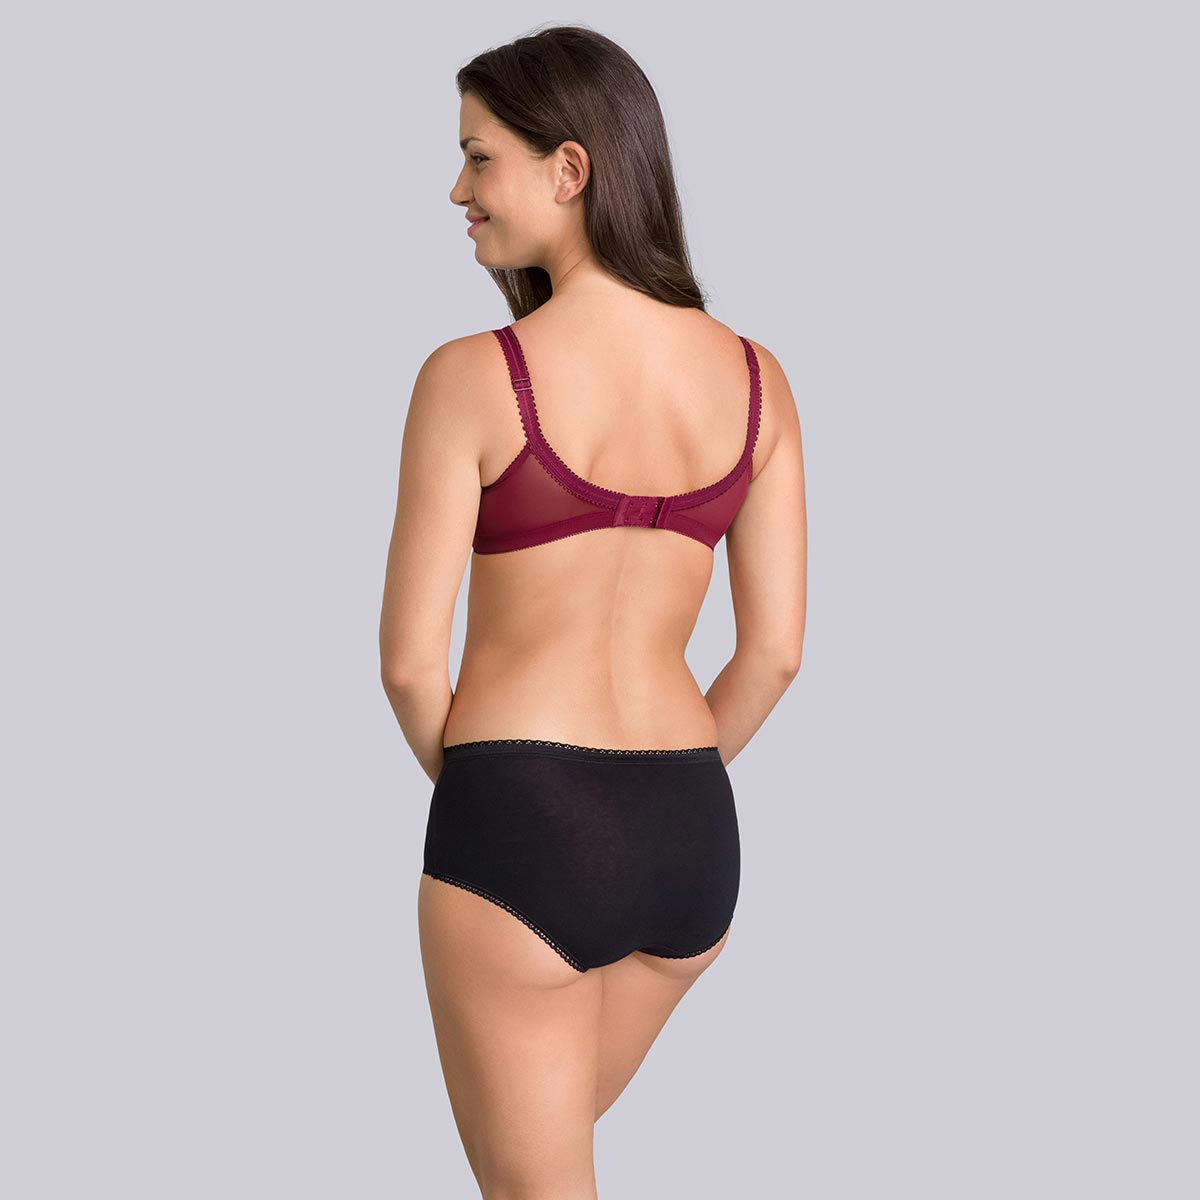 Non-wired Bra in Burgundy - Cross Your Heart, , PLAYTEX